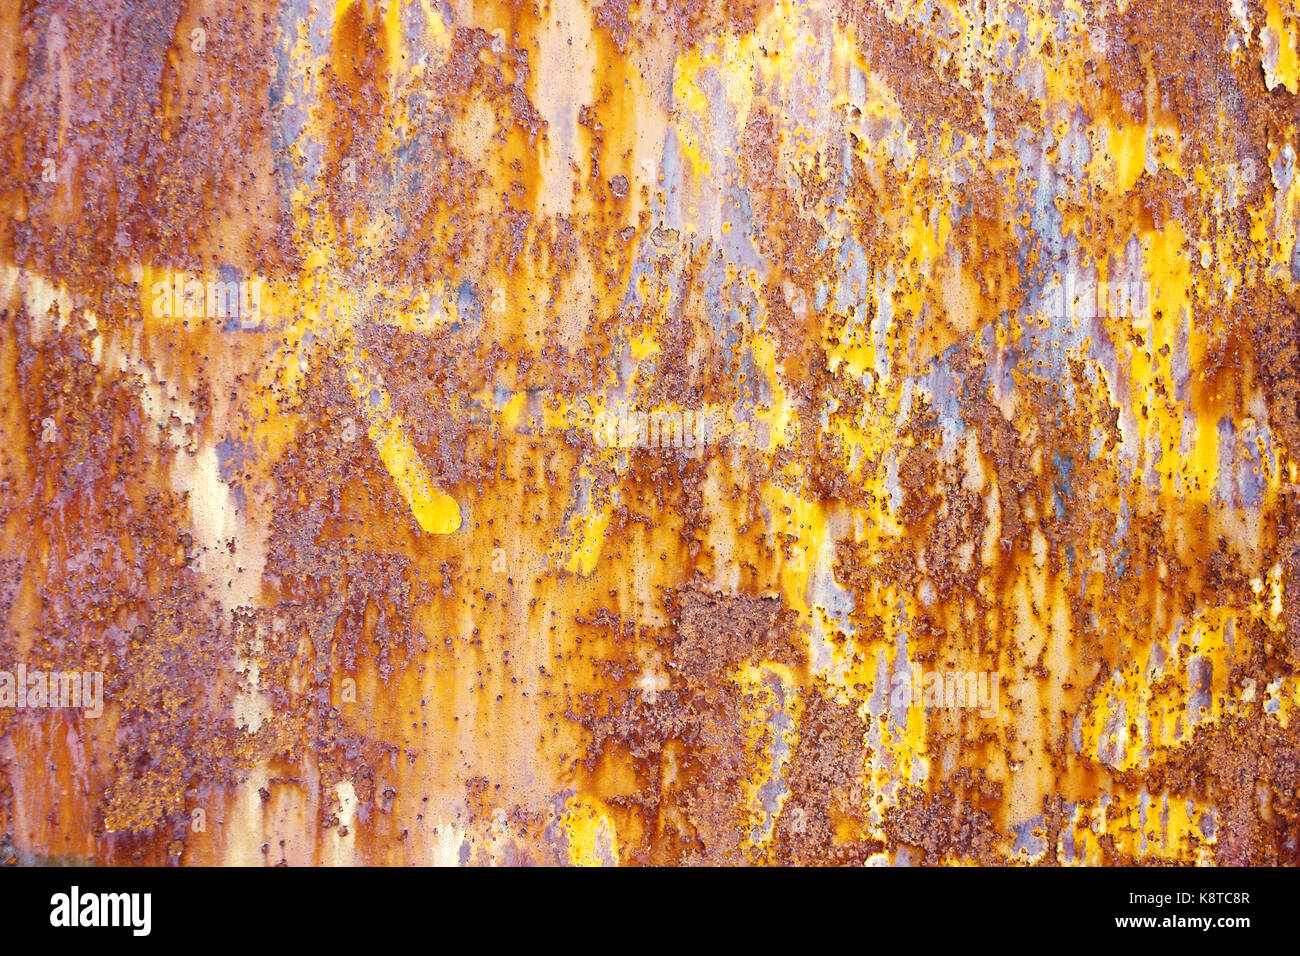 rusty degraded metal gate, background Stock Photo